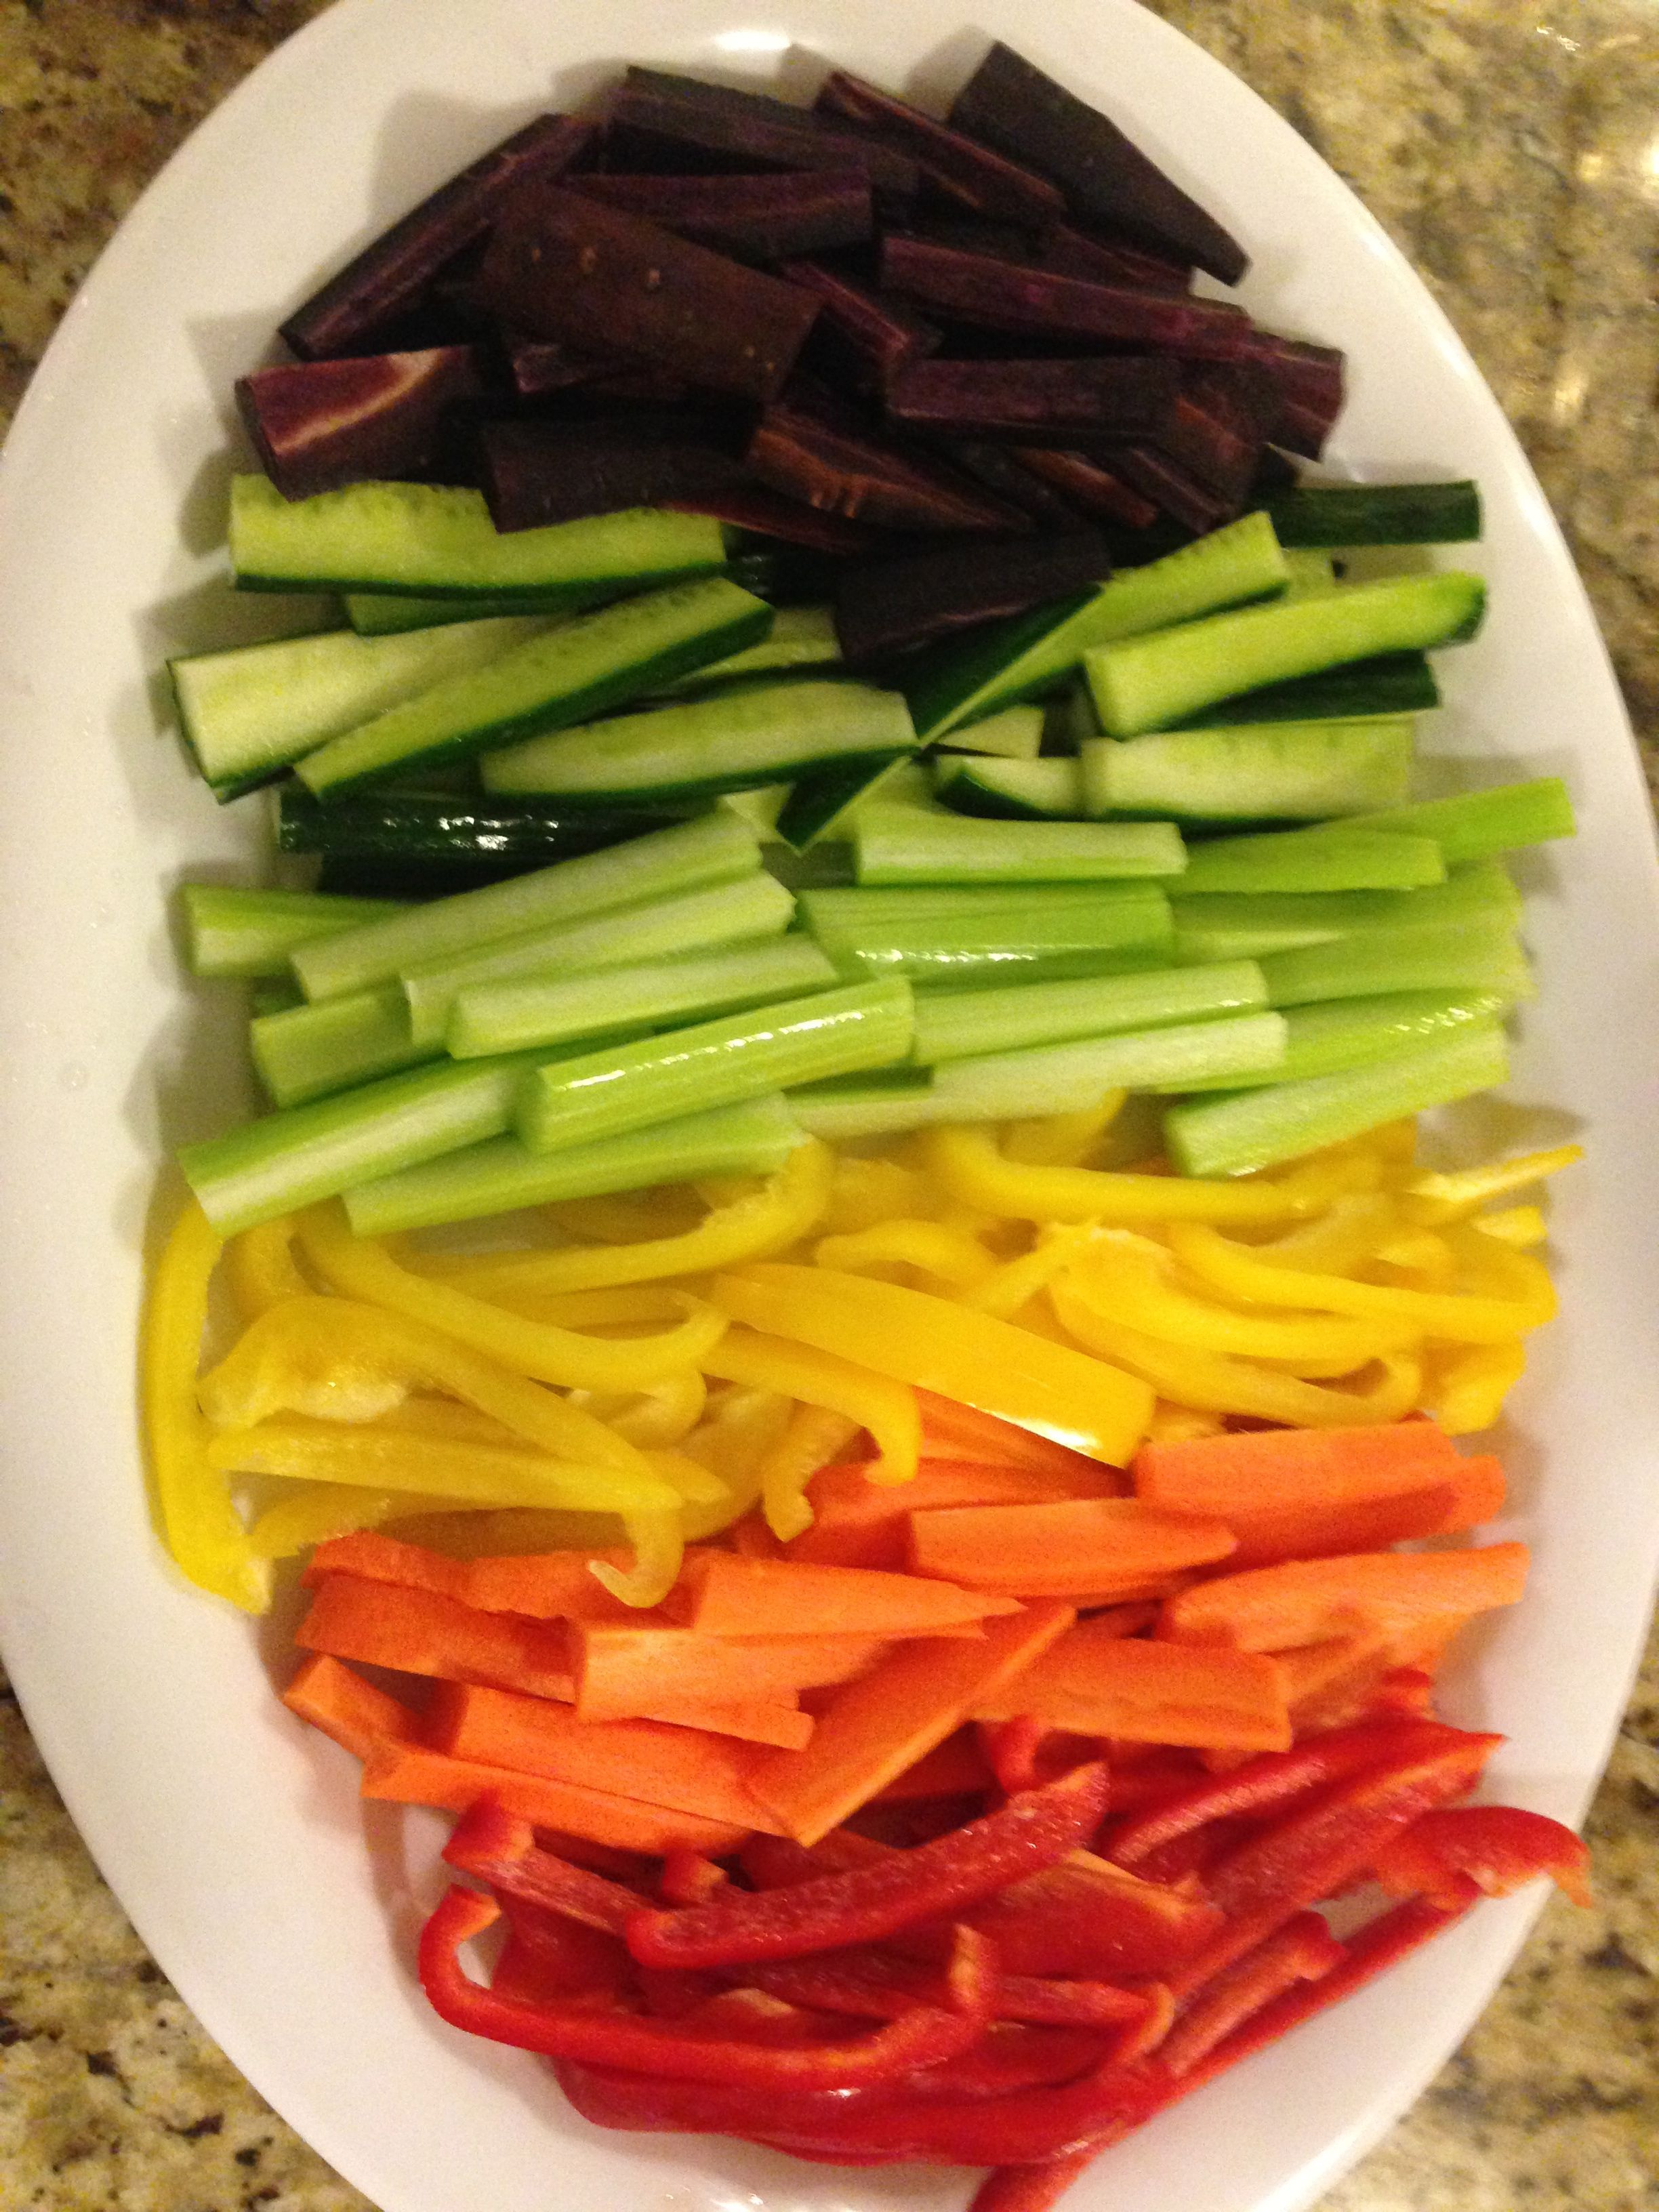 Healthy Hors' Devours - Rainbow Veggie Tray:  Purple Carrots, Cucumber, Celery, Yellow Pepper, Orange Carrots, and Red Peppers